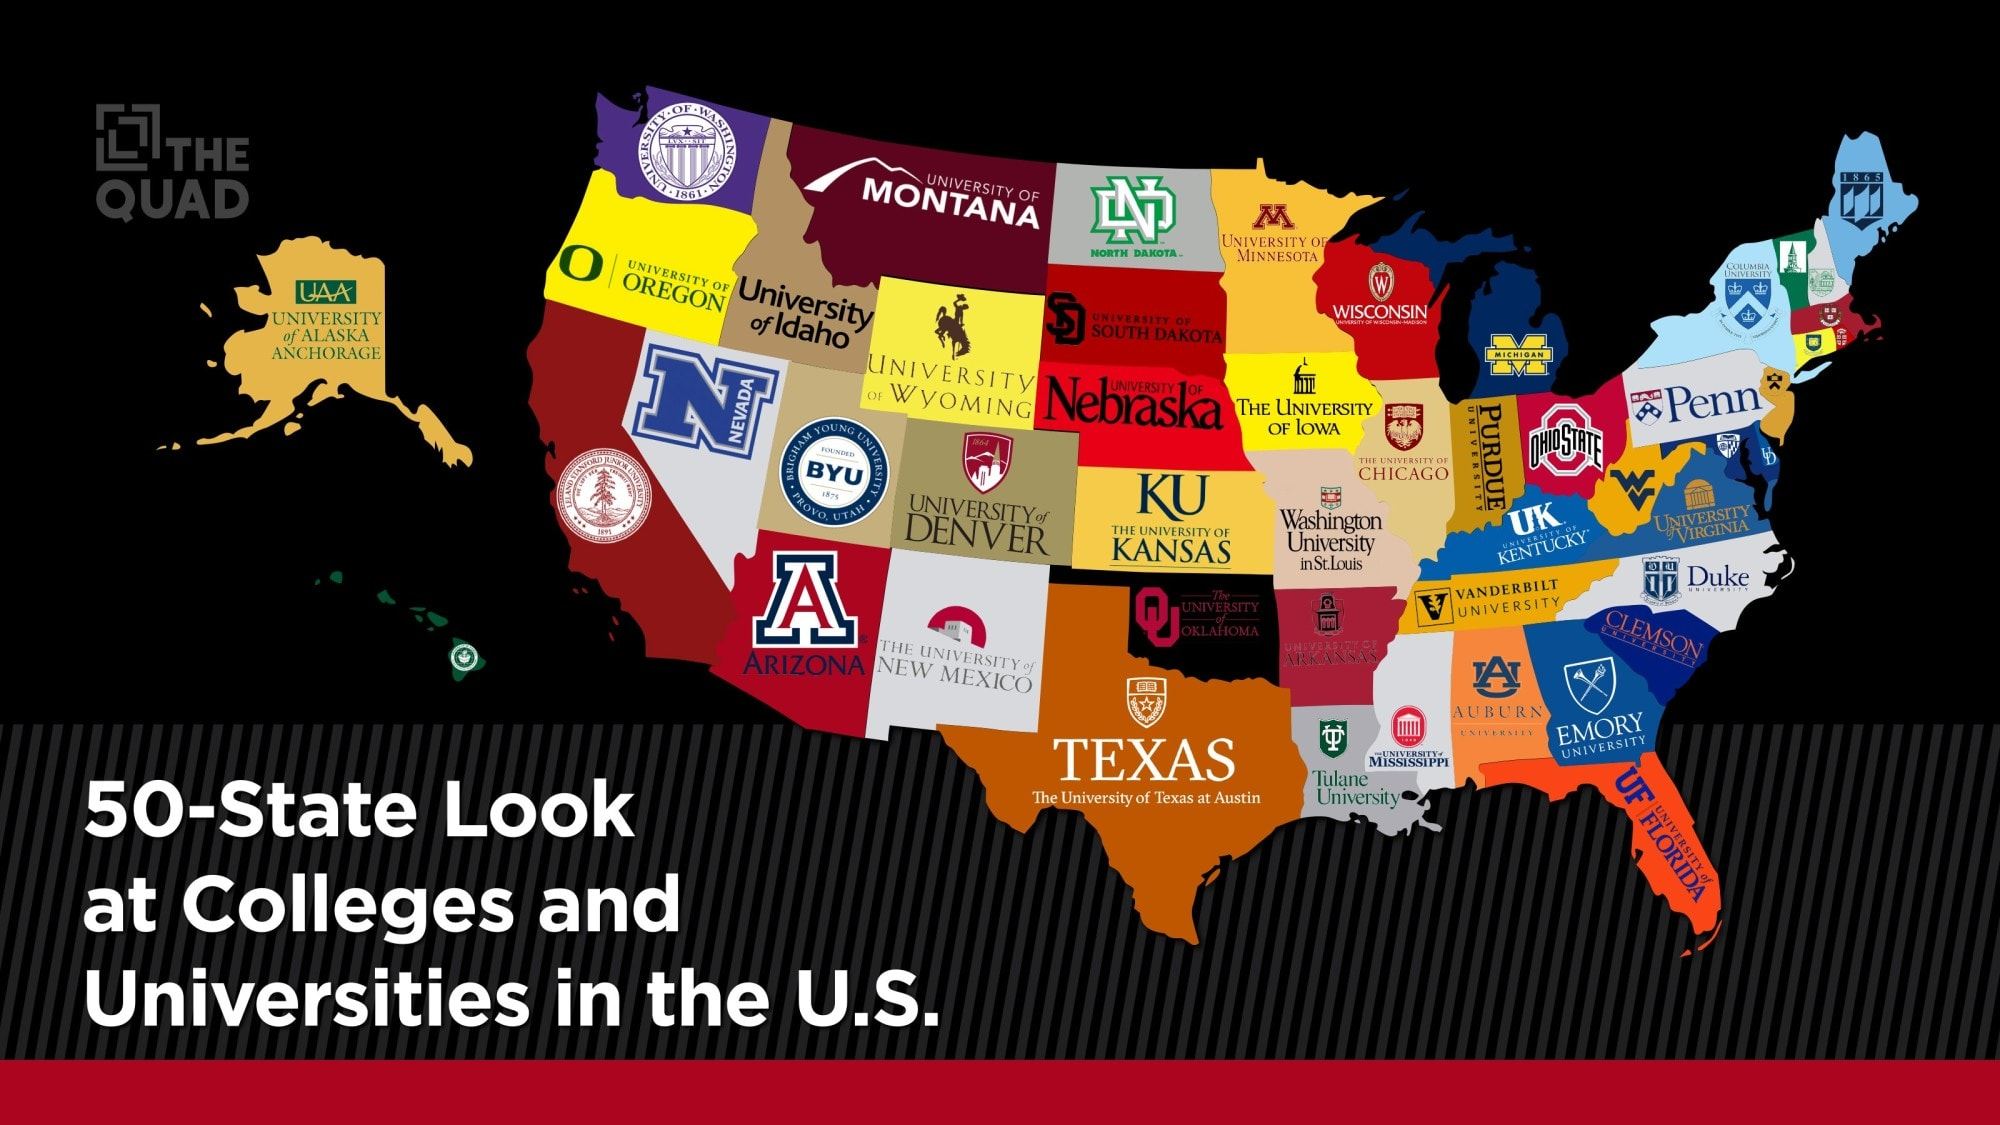 A 50-State Look at Colleges & Universities in the U S  | The Quad